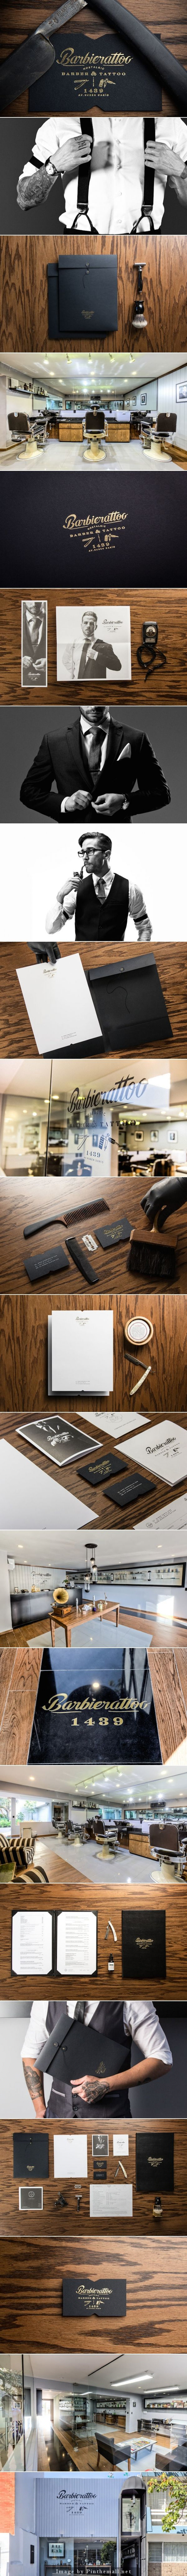 https://www.behance.net/memela I especially like the packaging - the black envelope with the small gold type.